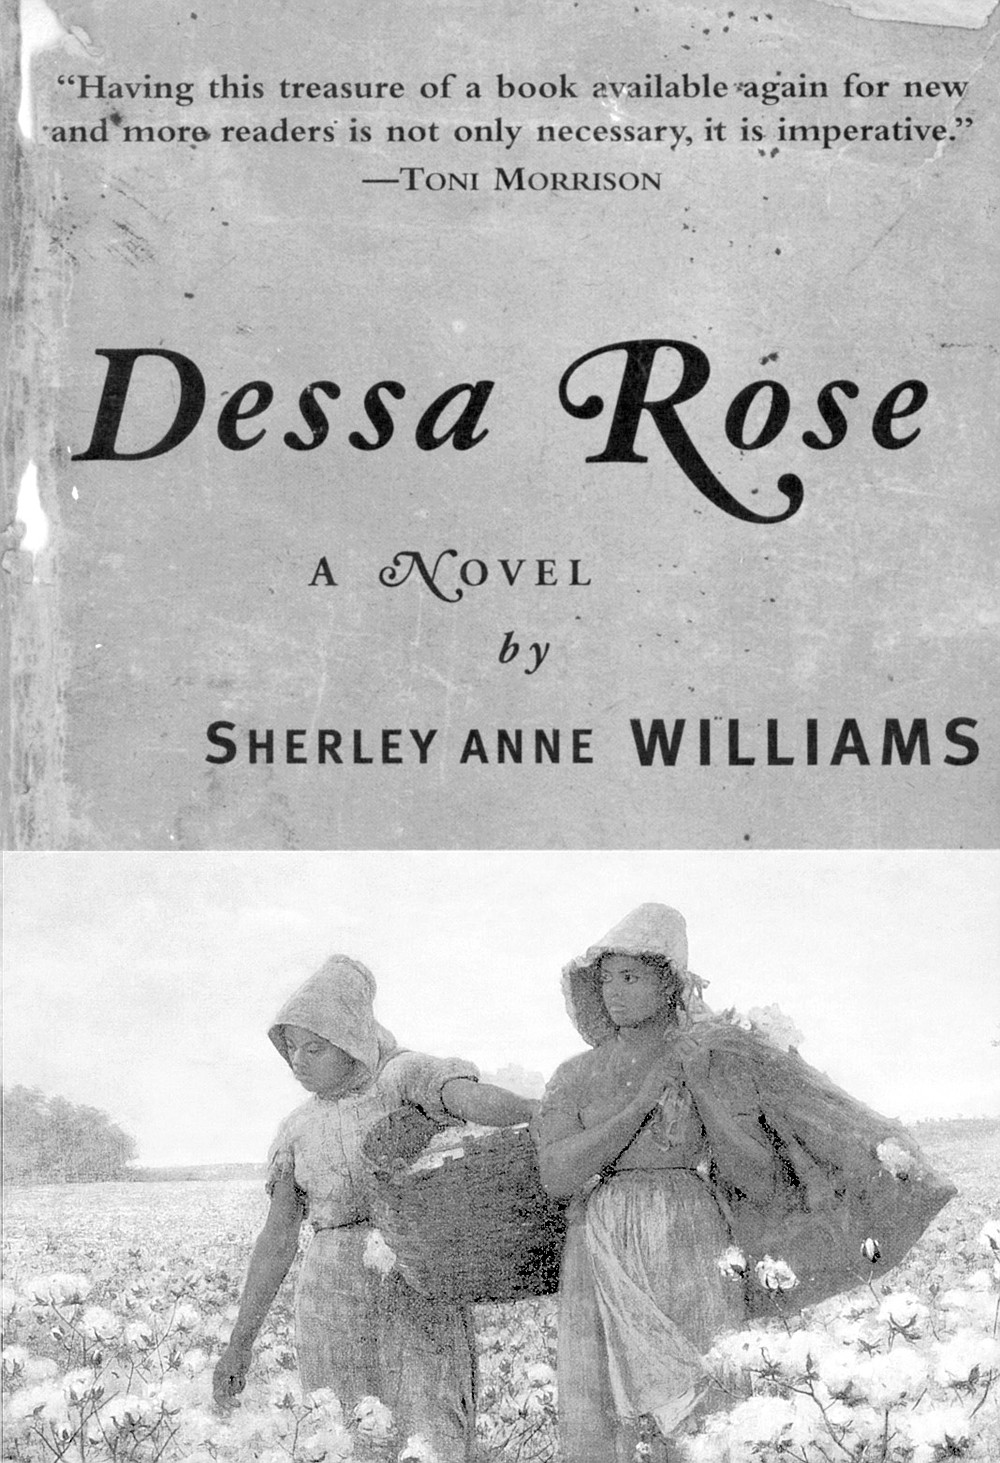 Levine remembered that the cast for the movie Dessa Rose was assembled when word came that filming was not going to happen. Cicely Tyson and Donald Sutherland were reportedly signed for parts.